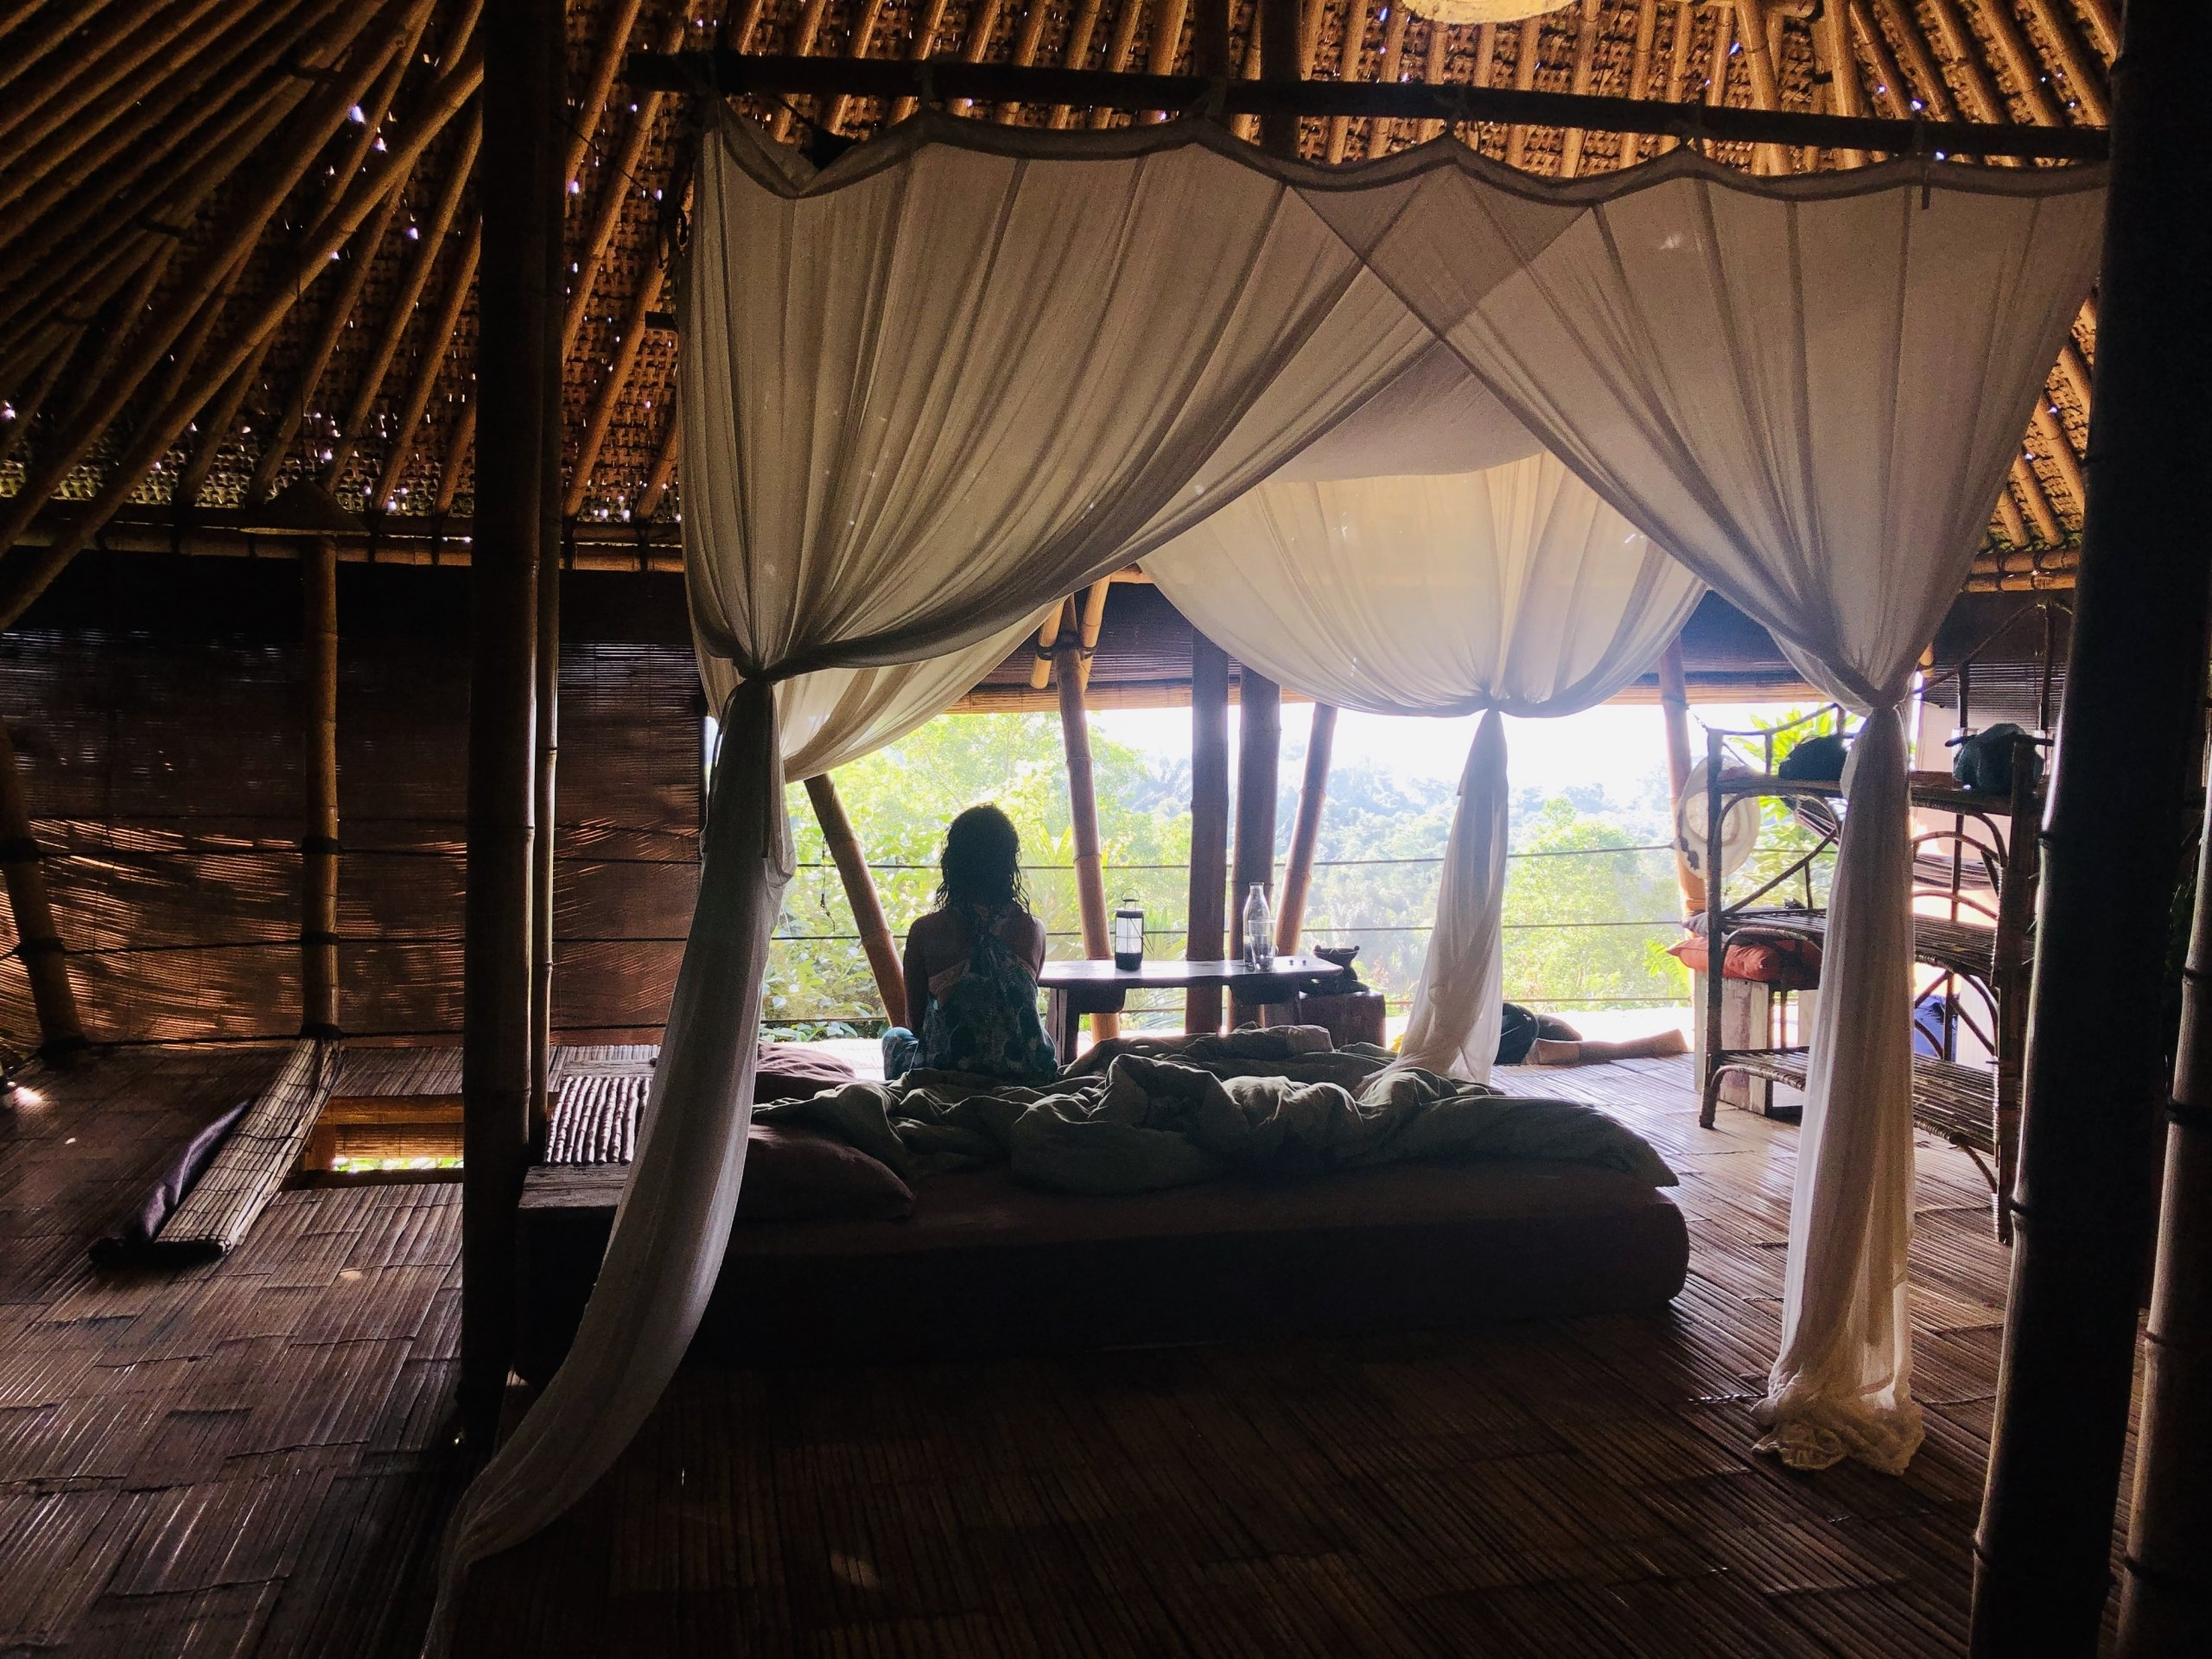 Where to stay in Bali- Bali Travel guide